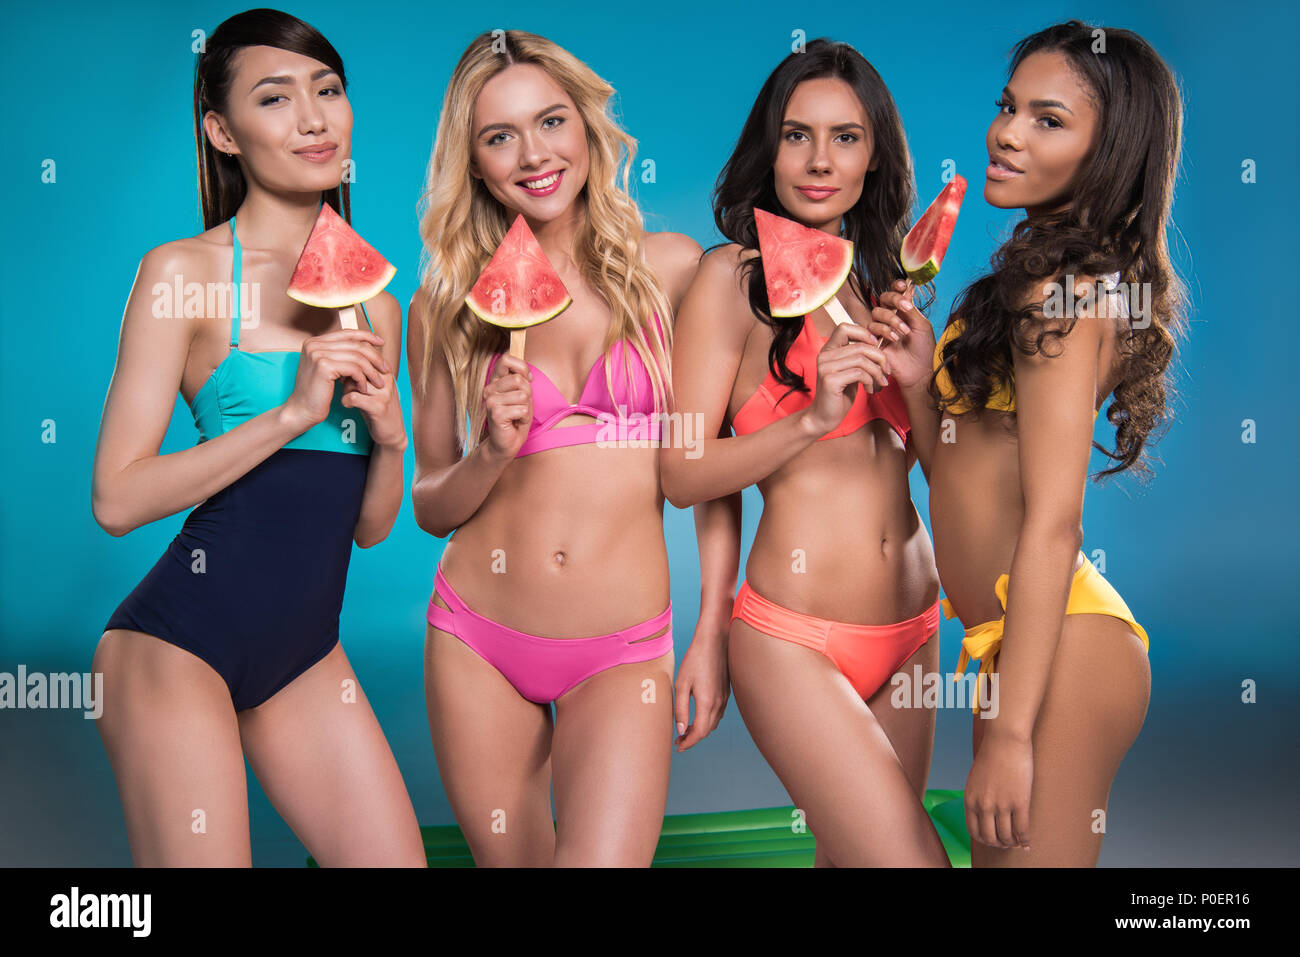 a9f4ca436b multiethnic women in swimsuits smiling and posing with watermelon slices -  Stock Image